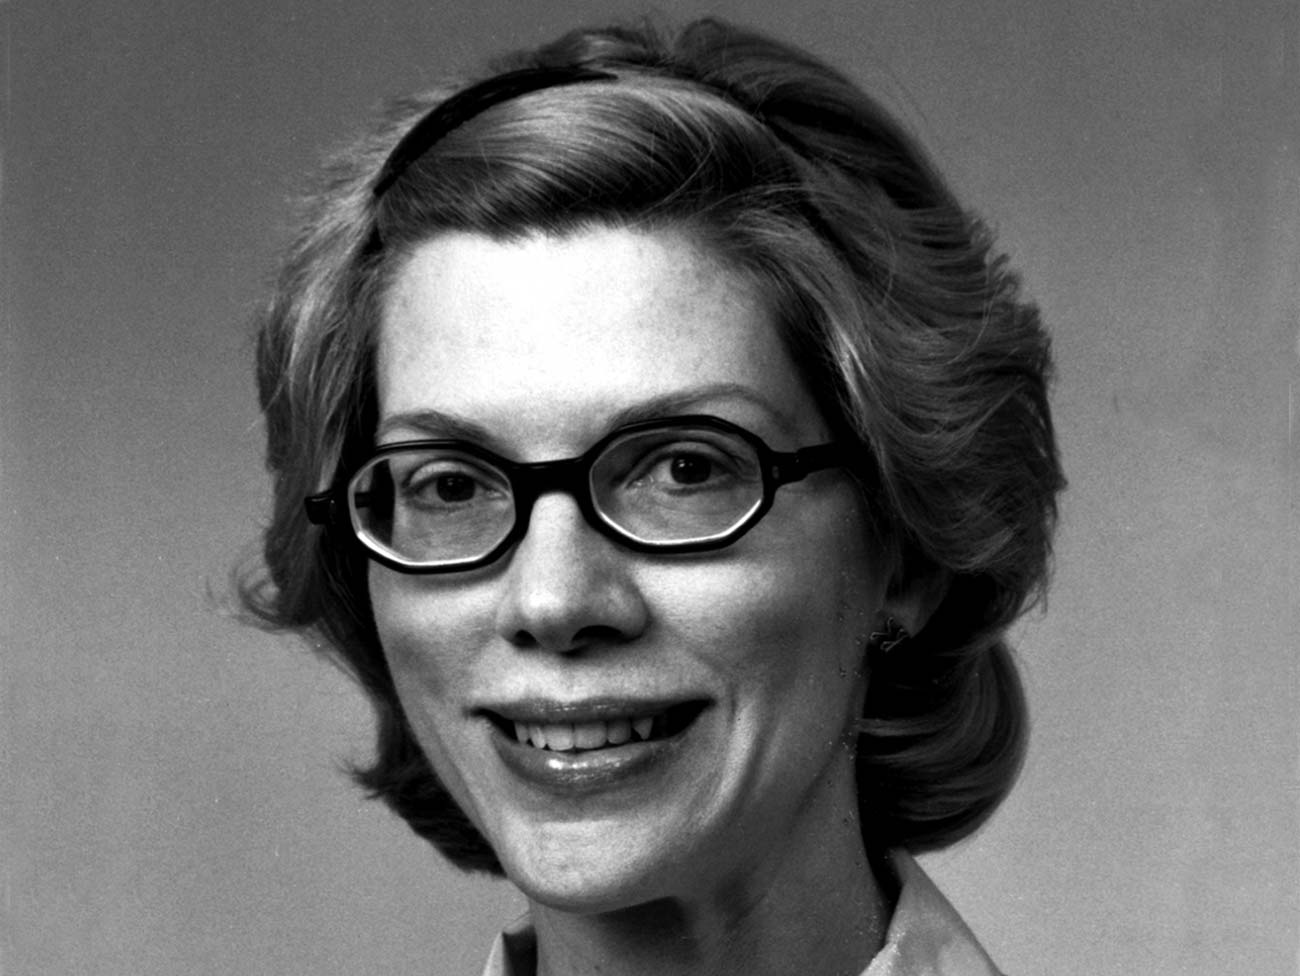 black and white photo of a woman smiling and wearing glasses